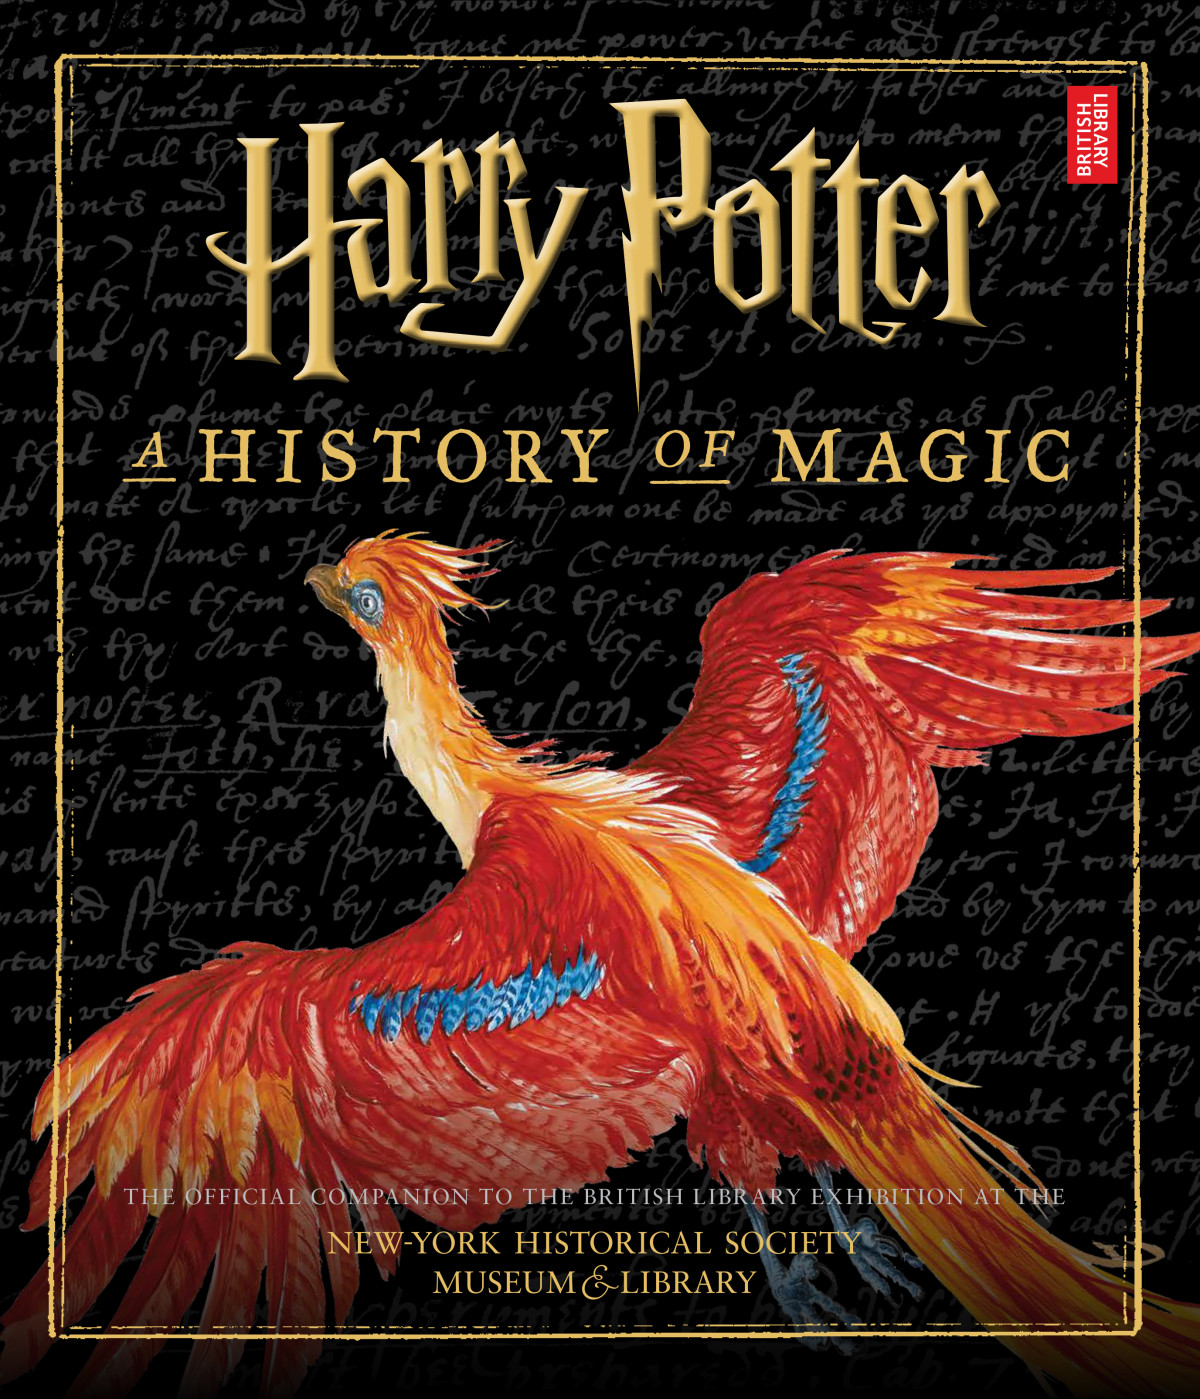 Harry Potter: A History Of Magic US Companion Book Cover